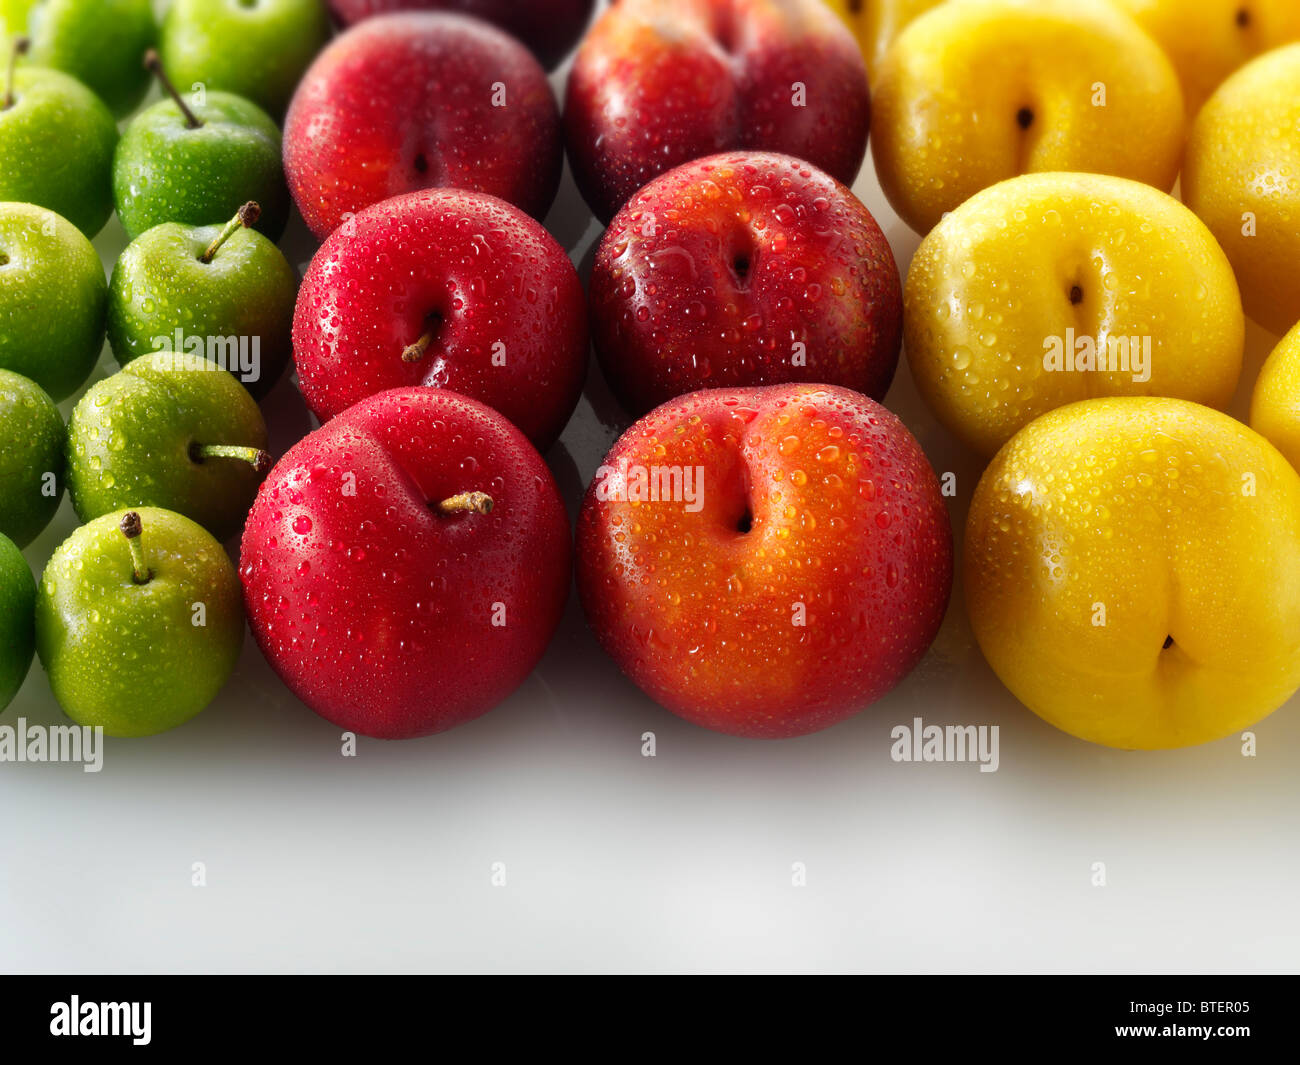 mixed red yellow and green plums against a white